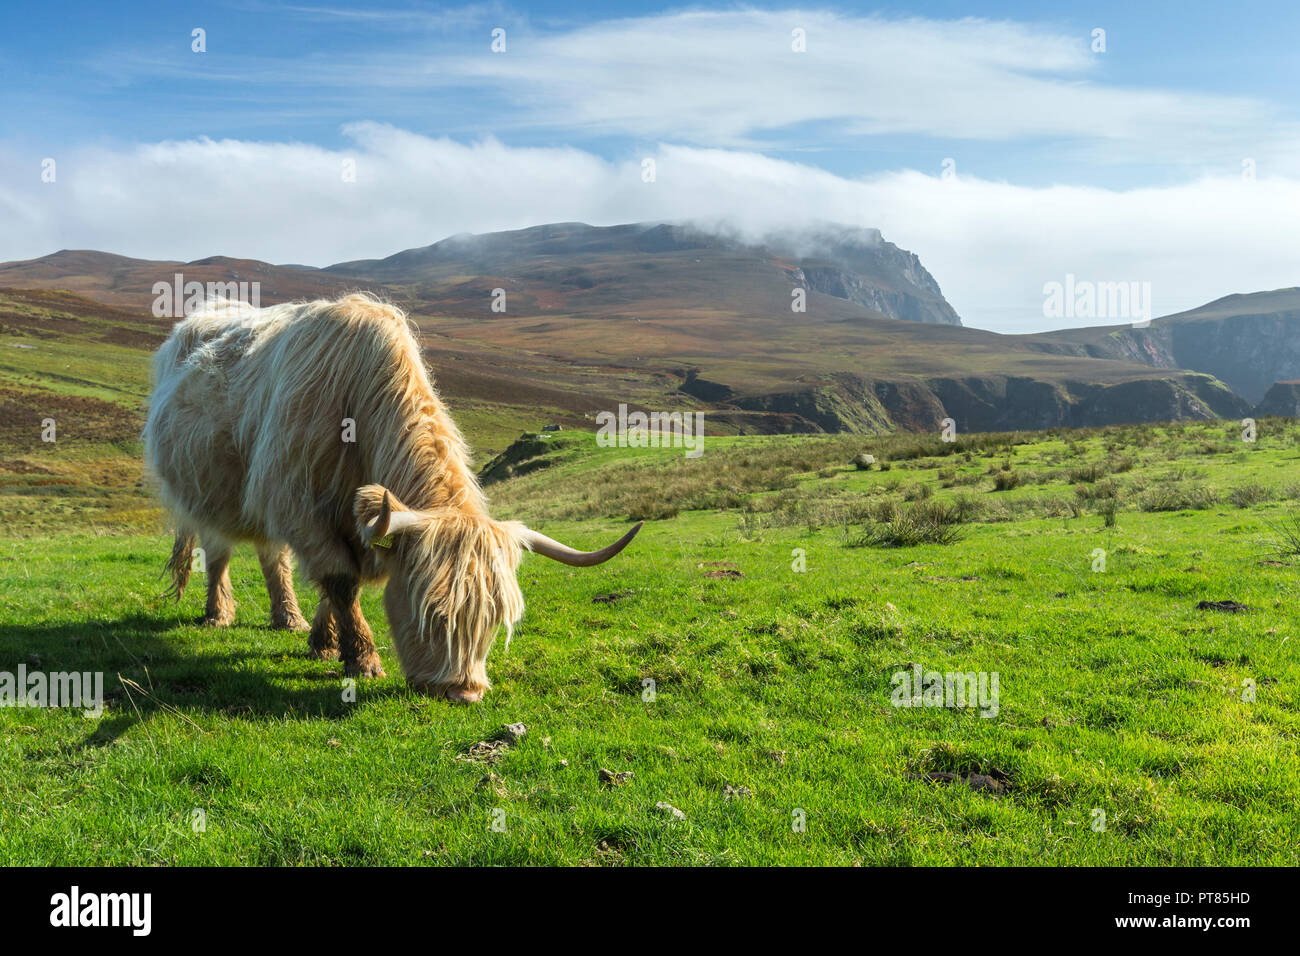 Landscape view of The Oa with a Highland cow grazing in the foreground, Islay, Scotland, UK, September 2017 Stock Photo